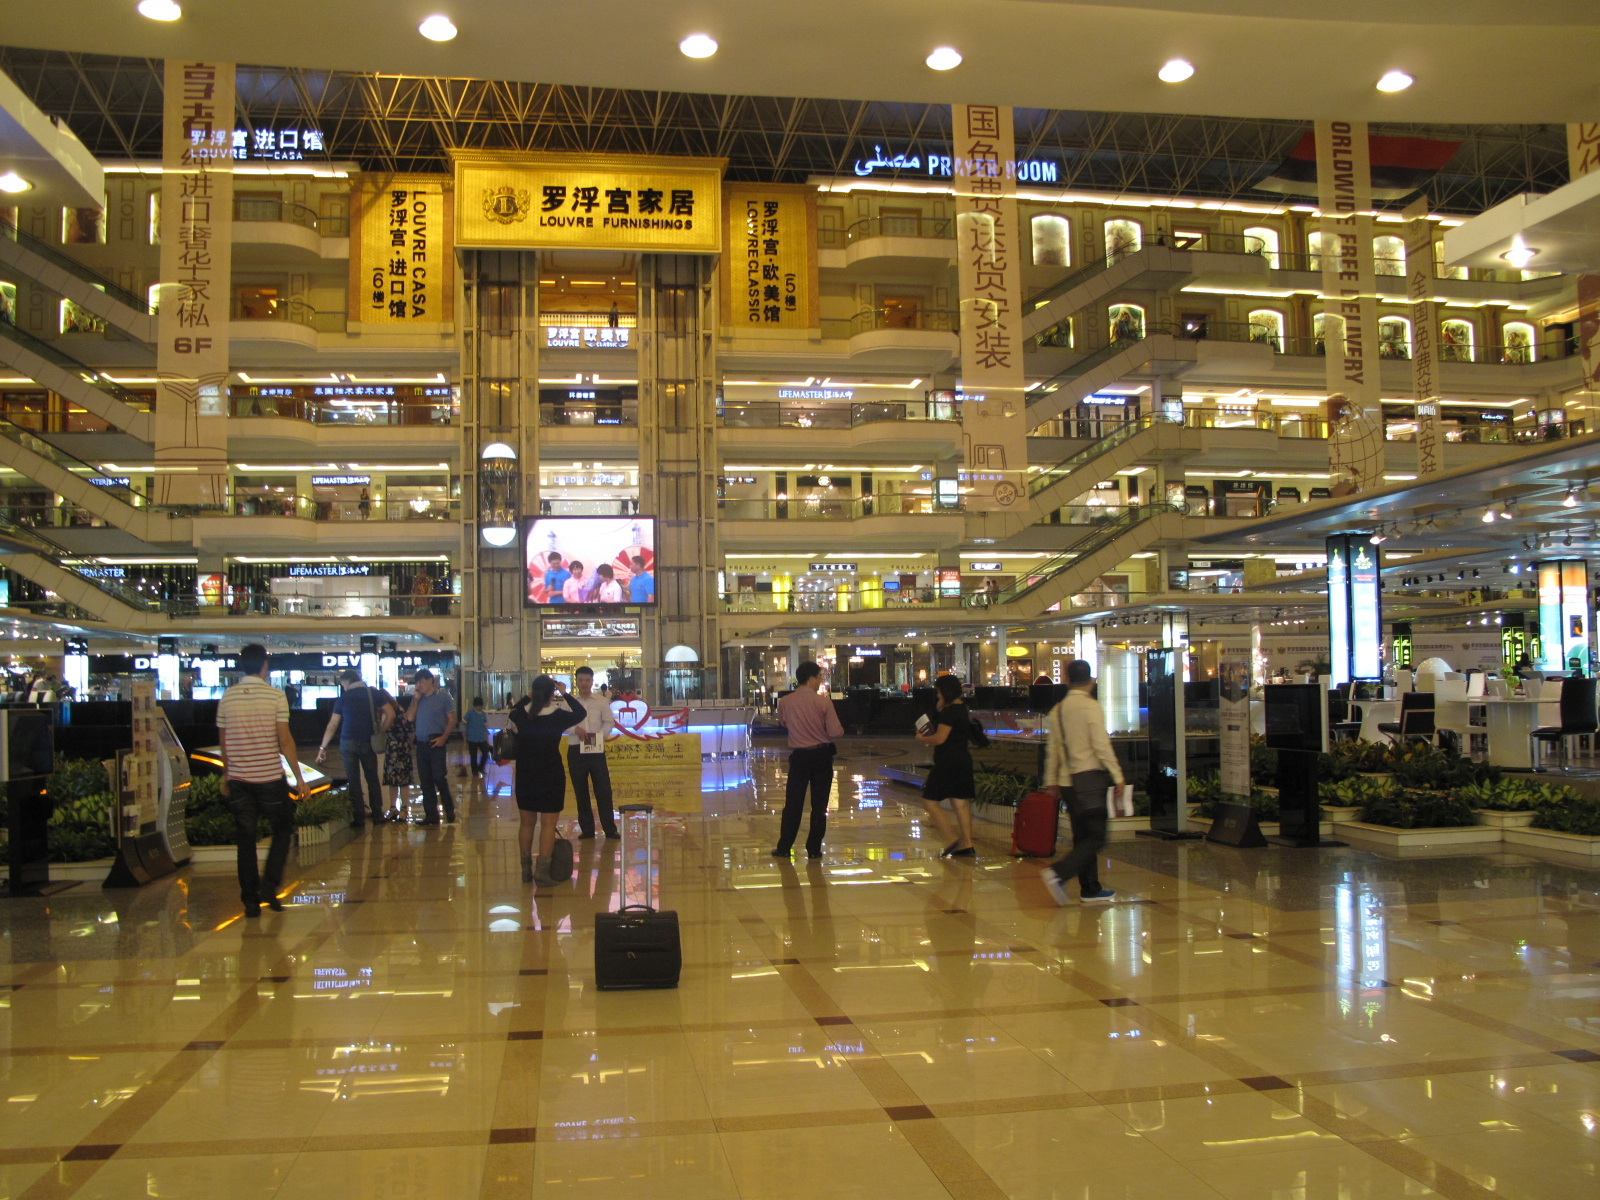 Louvre furniture shopping mall_China in-crowd